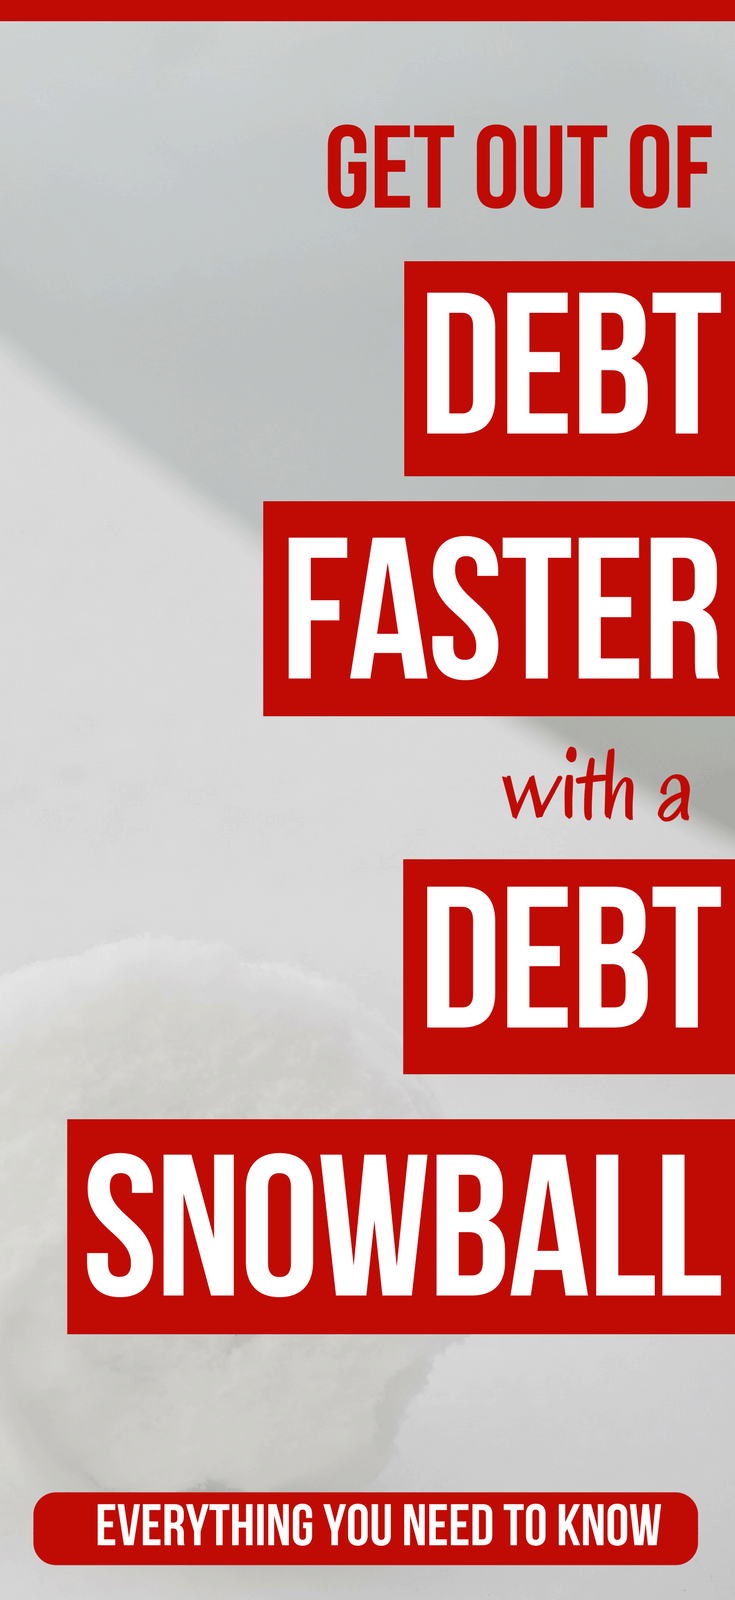 The Debt Snowball Method Explained: A Quick-Start Guide  Pay off your debt faster with the debt snowball method. Here's everything you need to know to get started right now.   debt snowball method dave ramsey | how to get out of debt with a debt snowball | debt snowball motivation tips  #thewaystowealth #debt #debtfree #daveramsey